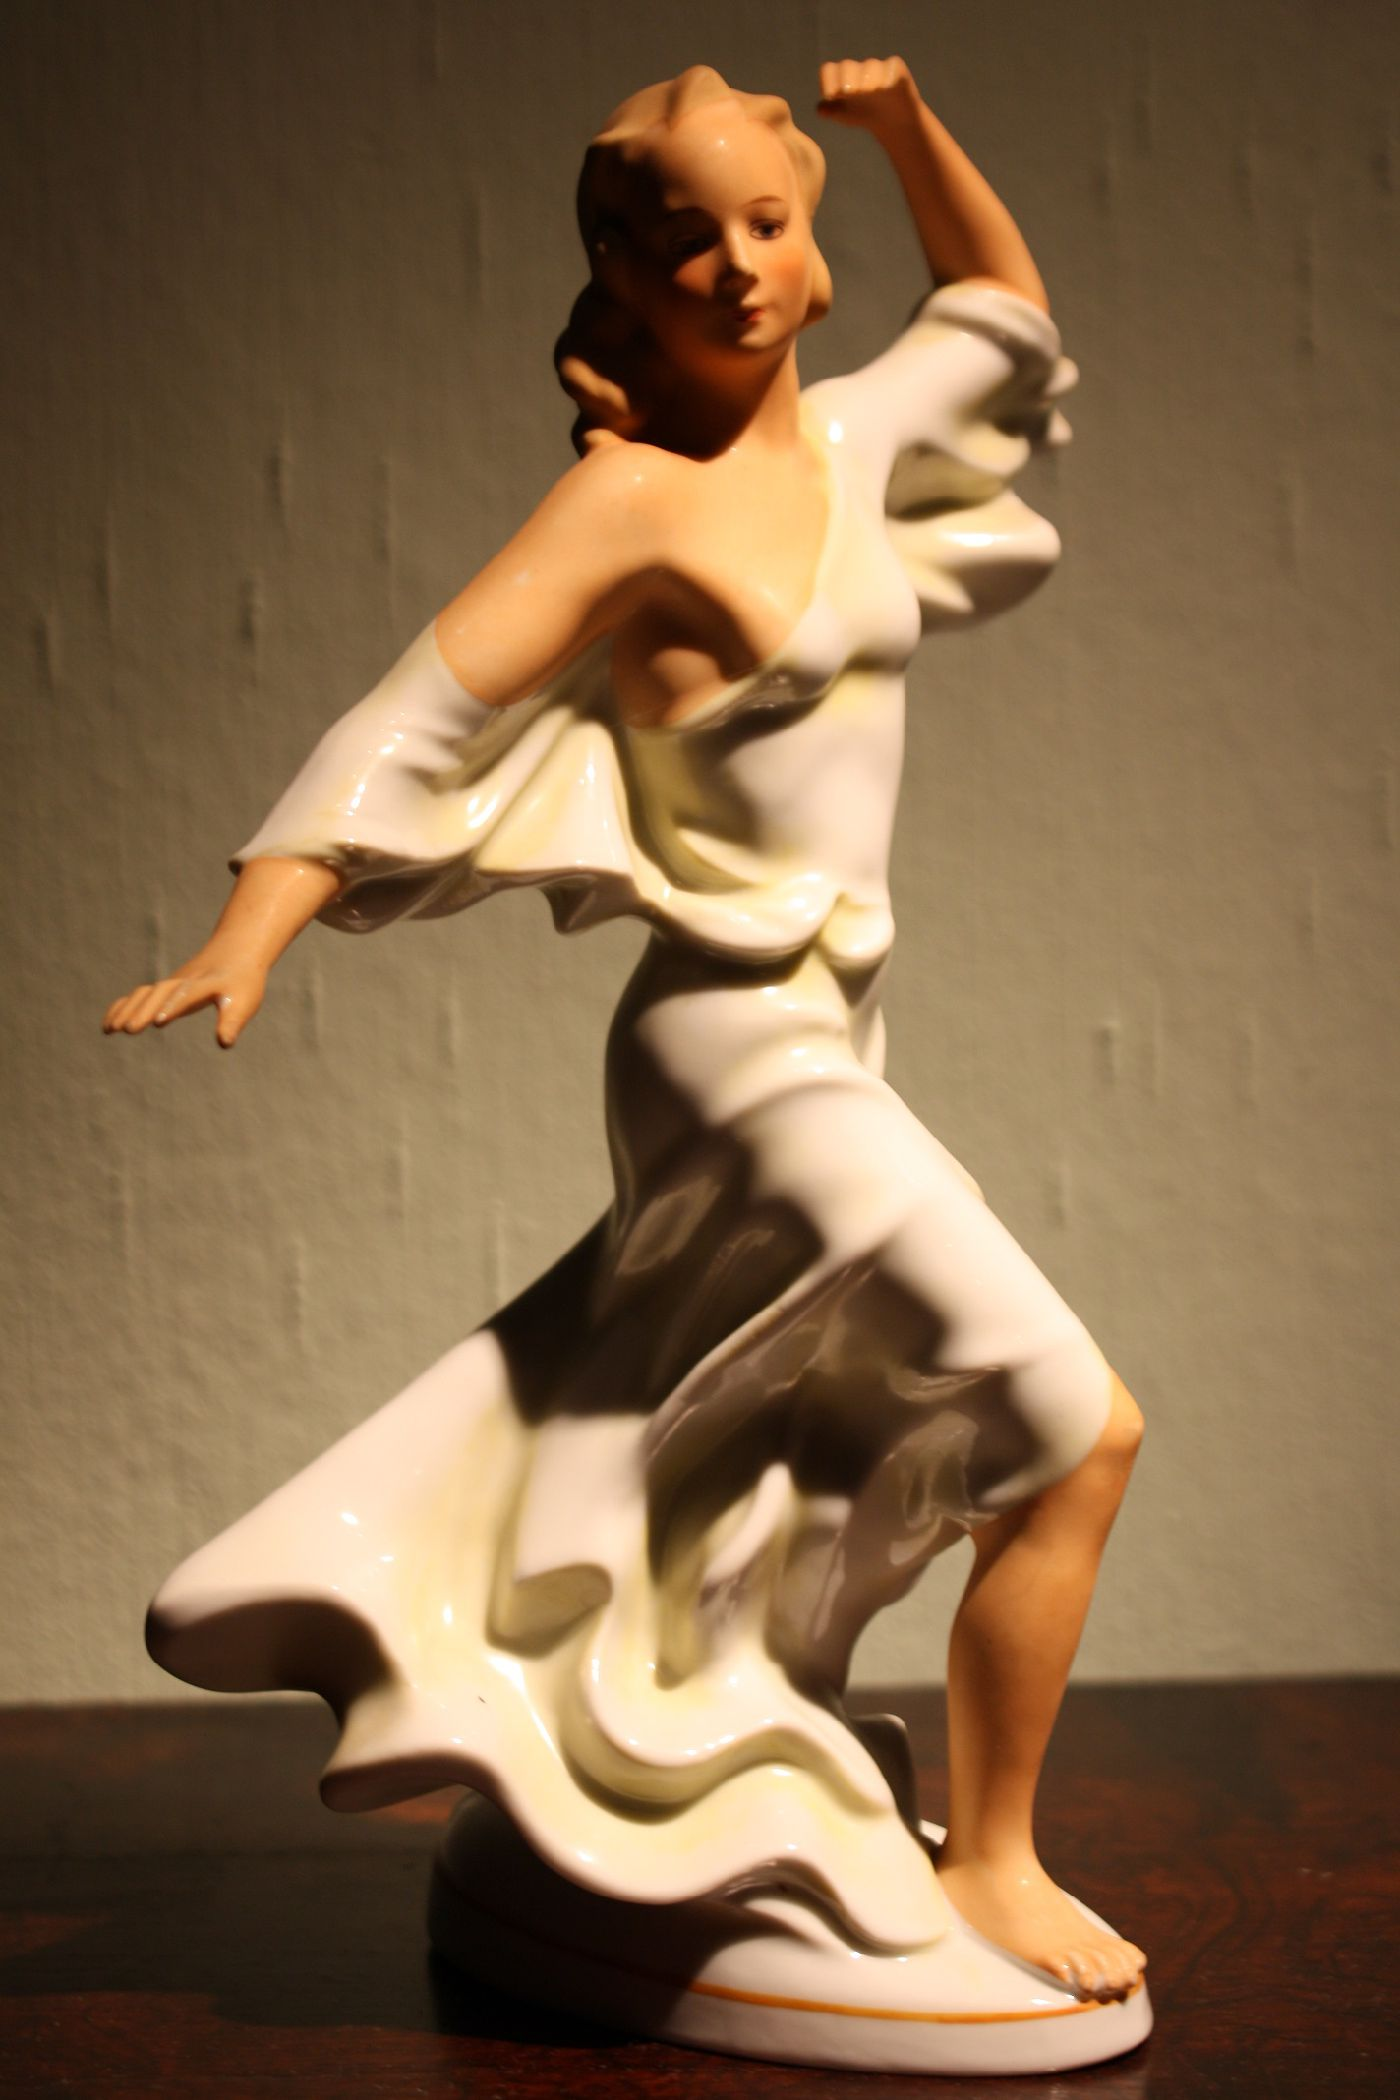 A fine vintage 1930's Austrian or German porcelain sculpture of a dancing girl